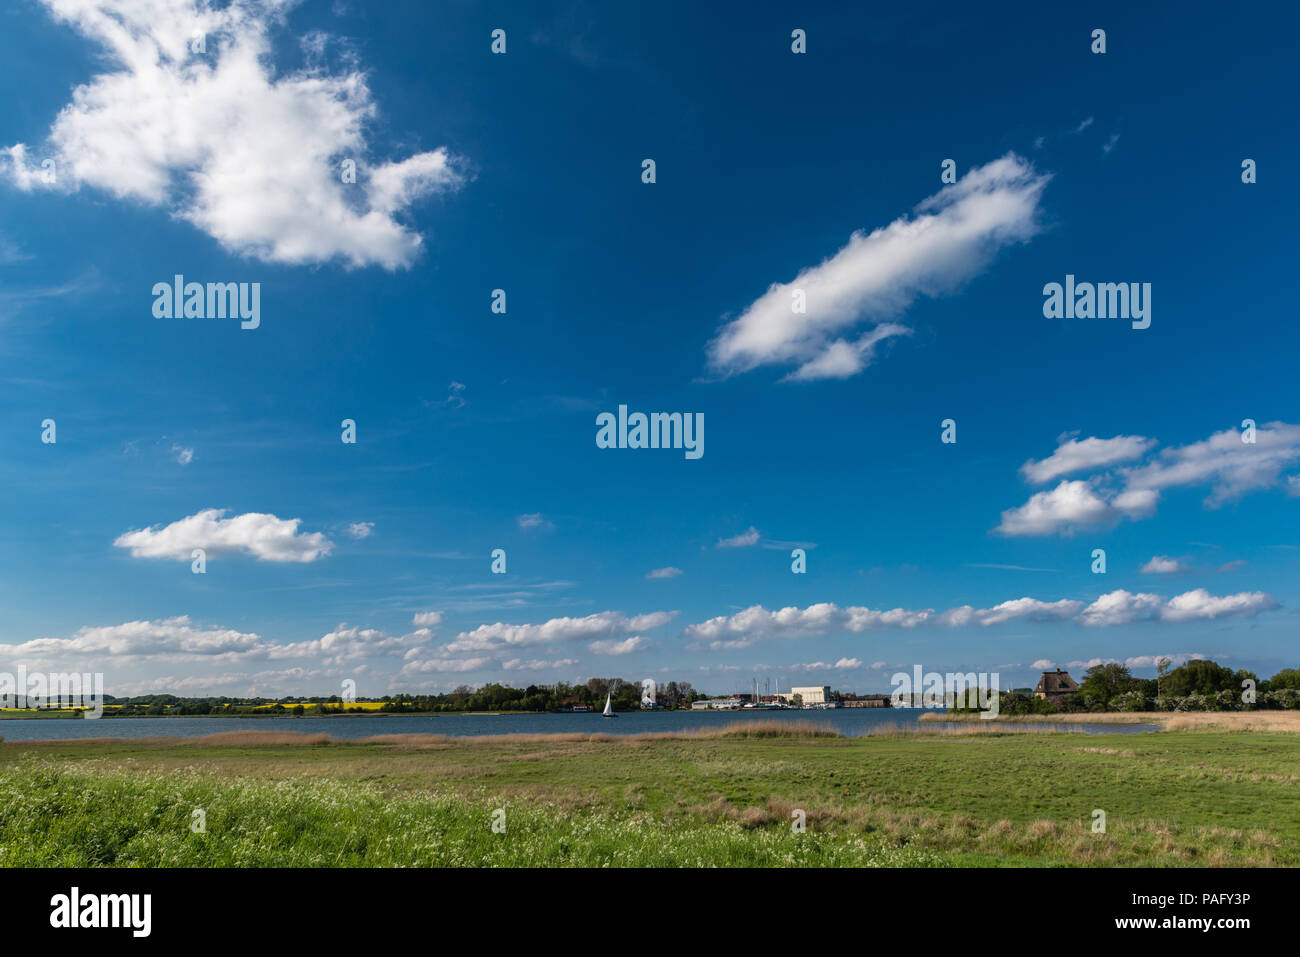 View across the Schlei Fjord, small town of Arnison opppsite bank,landscape Angeln,  Schleswig-Holstein, Germany - Stock Image